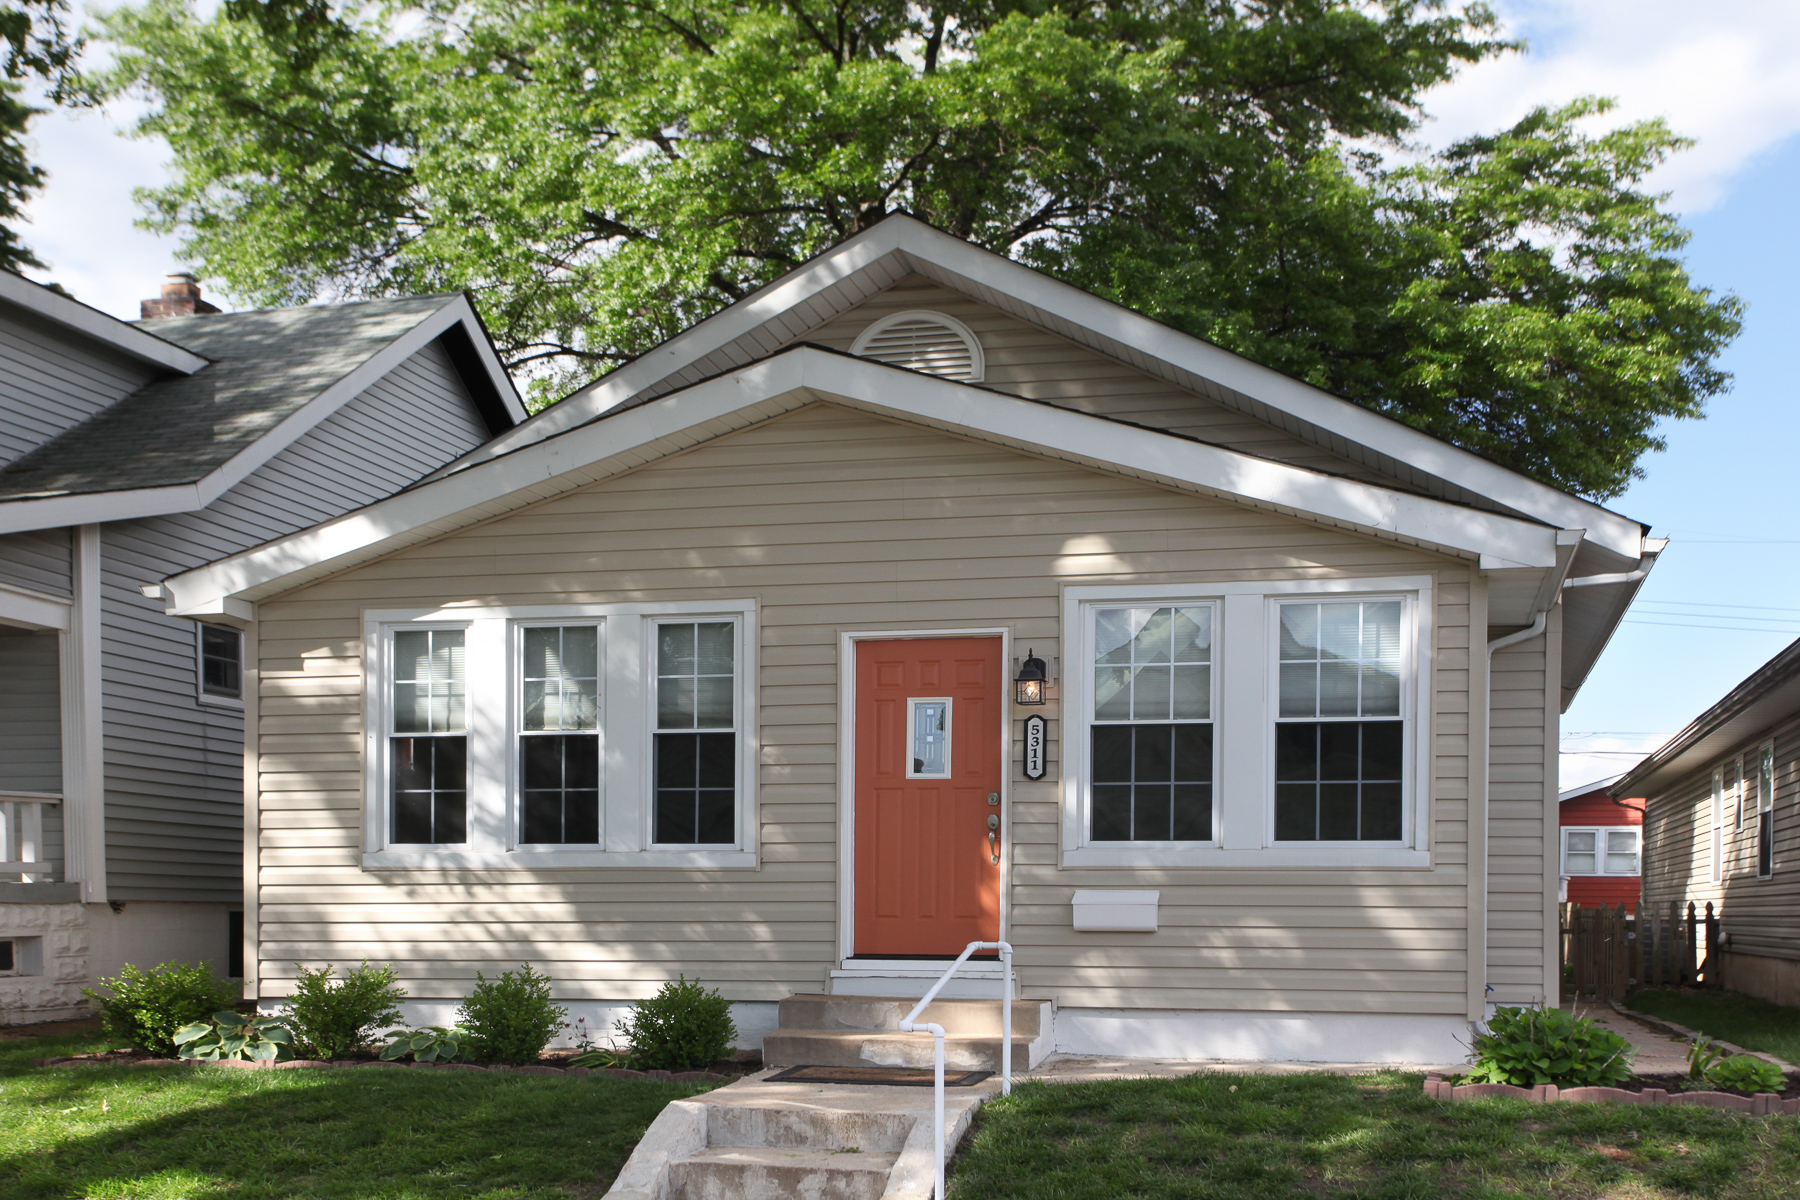 Single Family Home for Sale at Blow Street 5311 Blow Street St. Louis, Missouri, 63109 United States